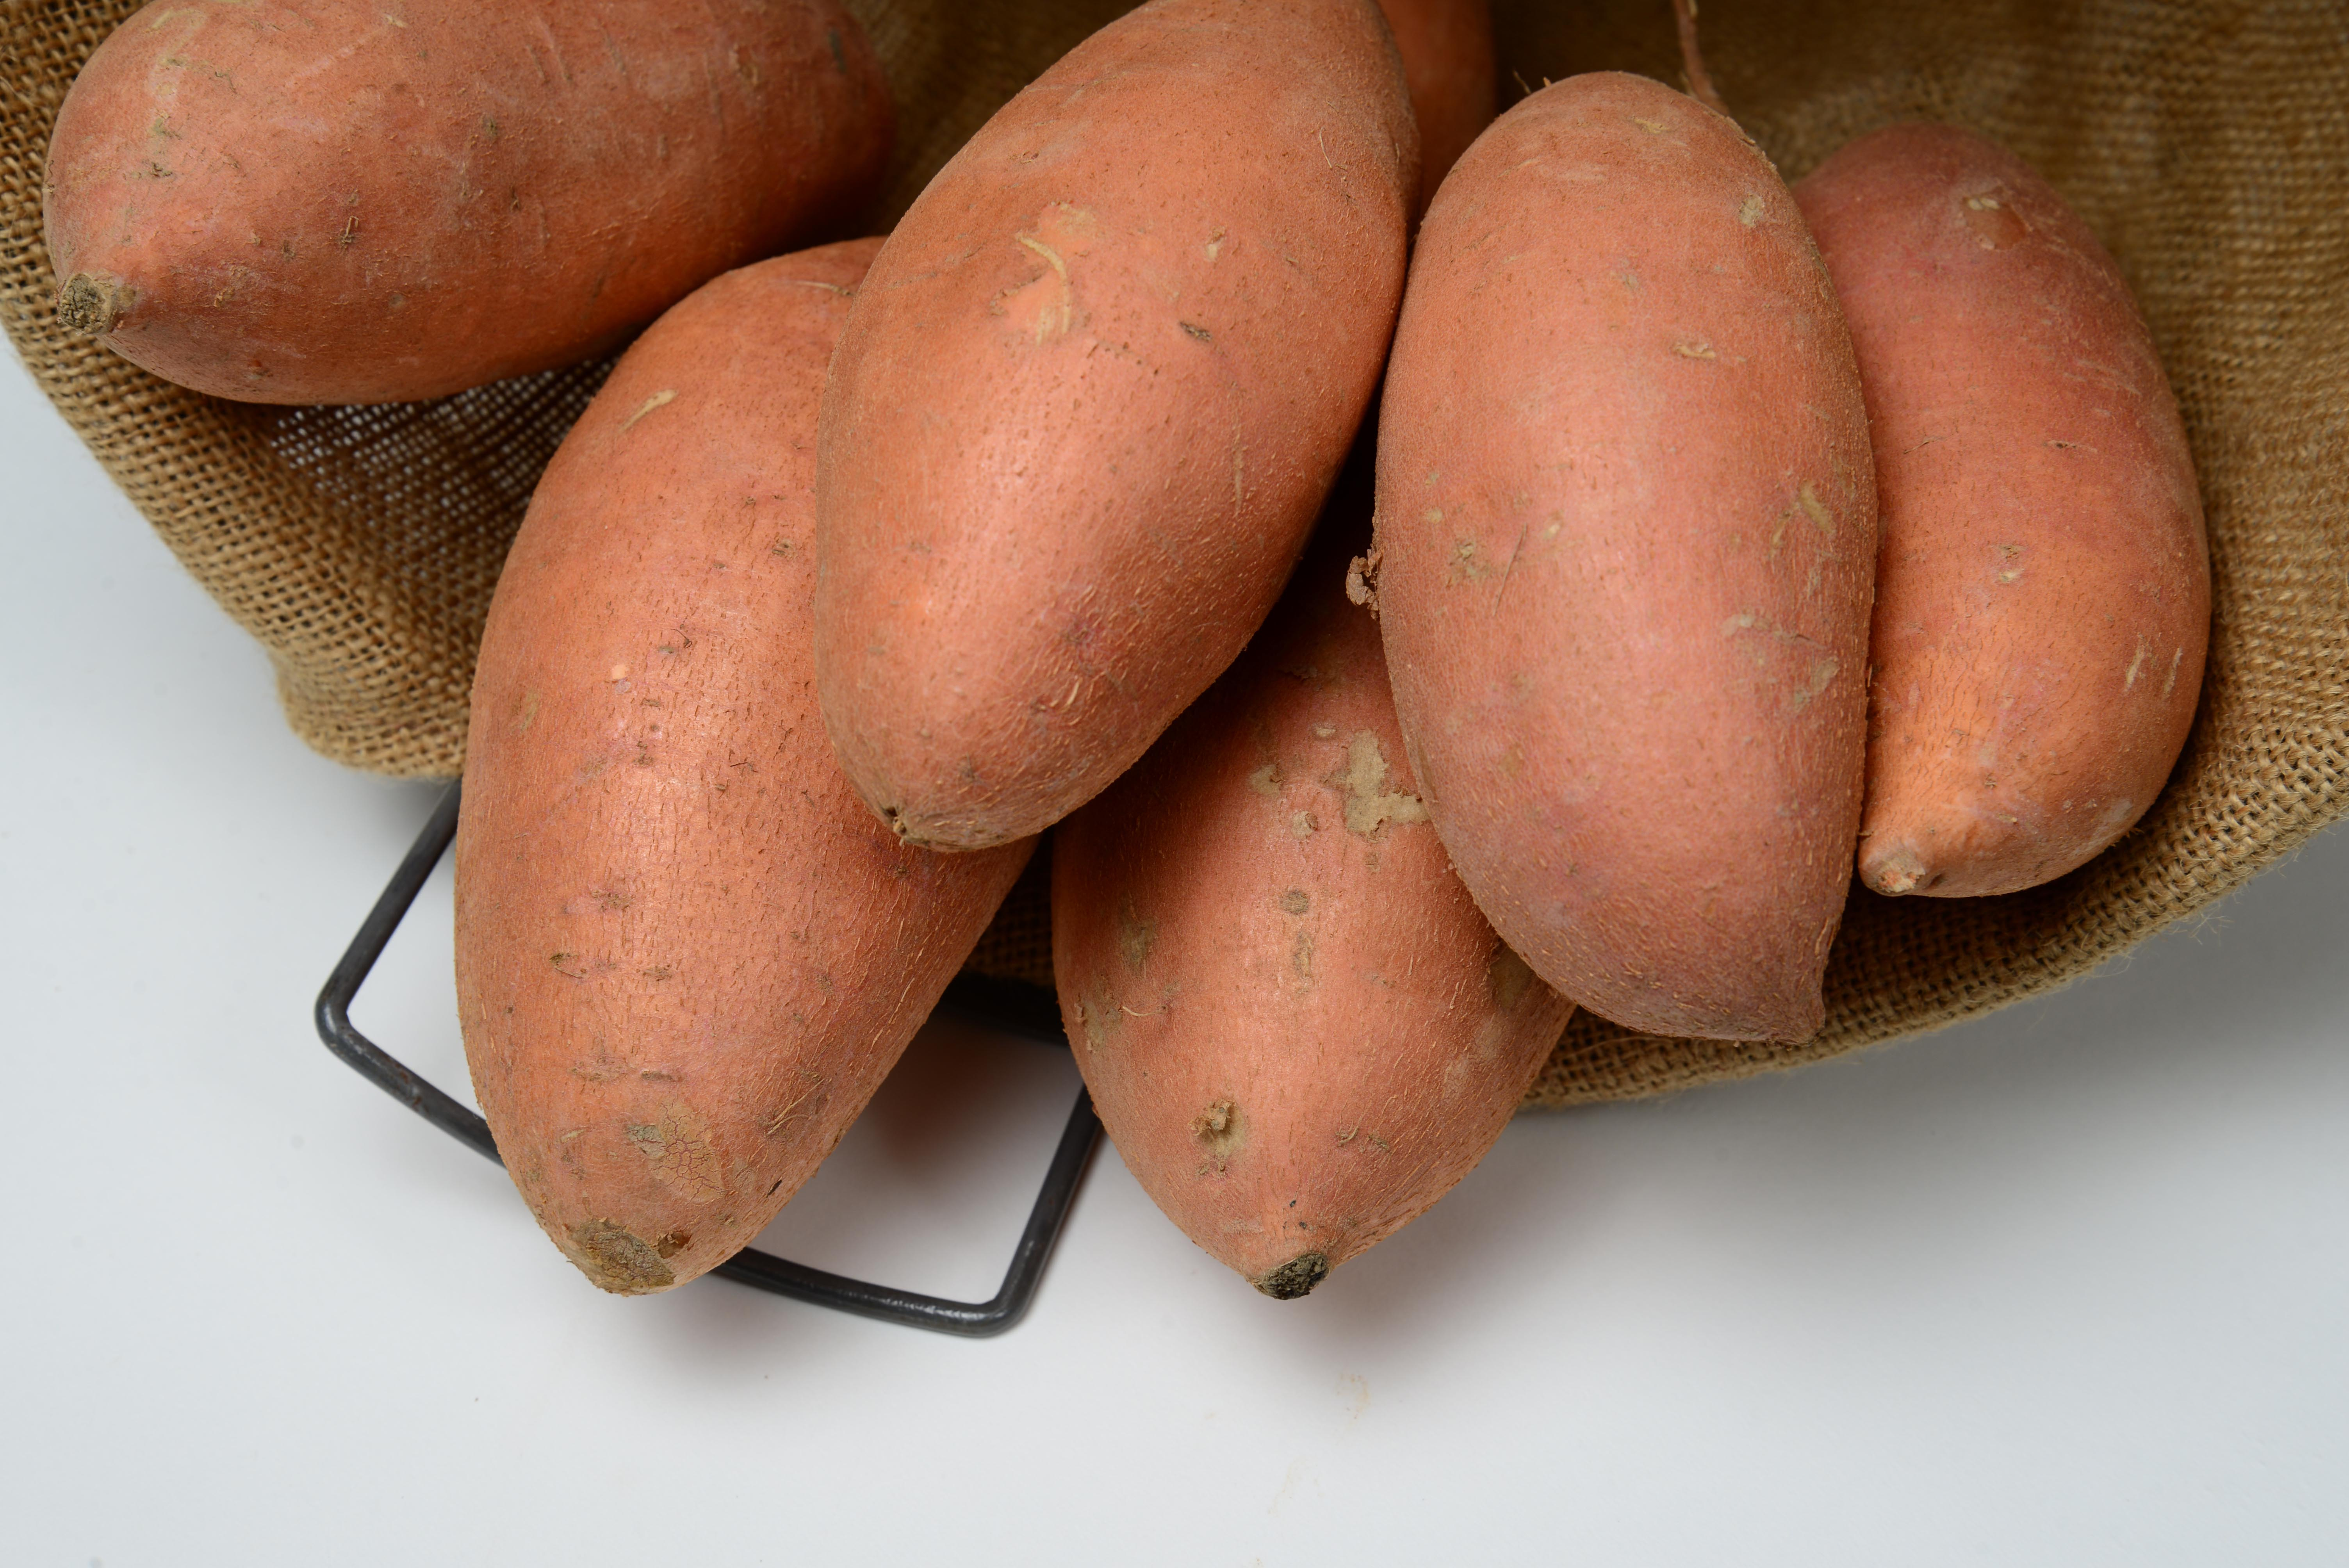 Orange skinned sweet potato in basket